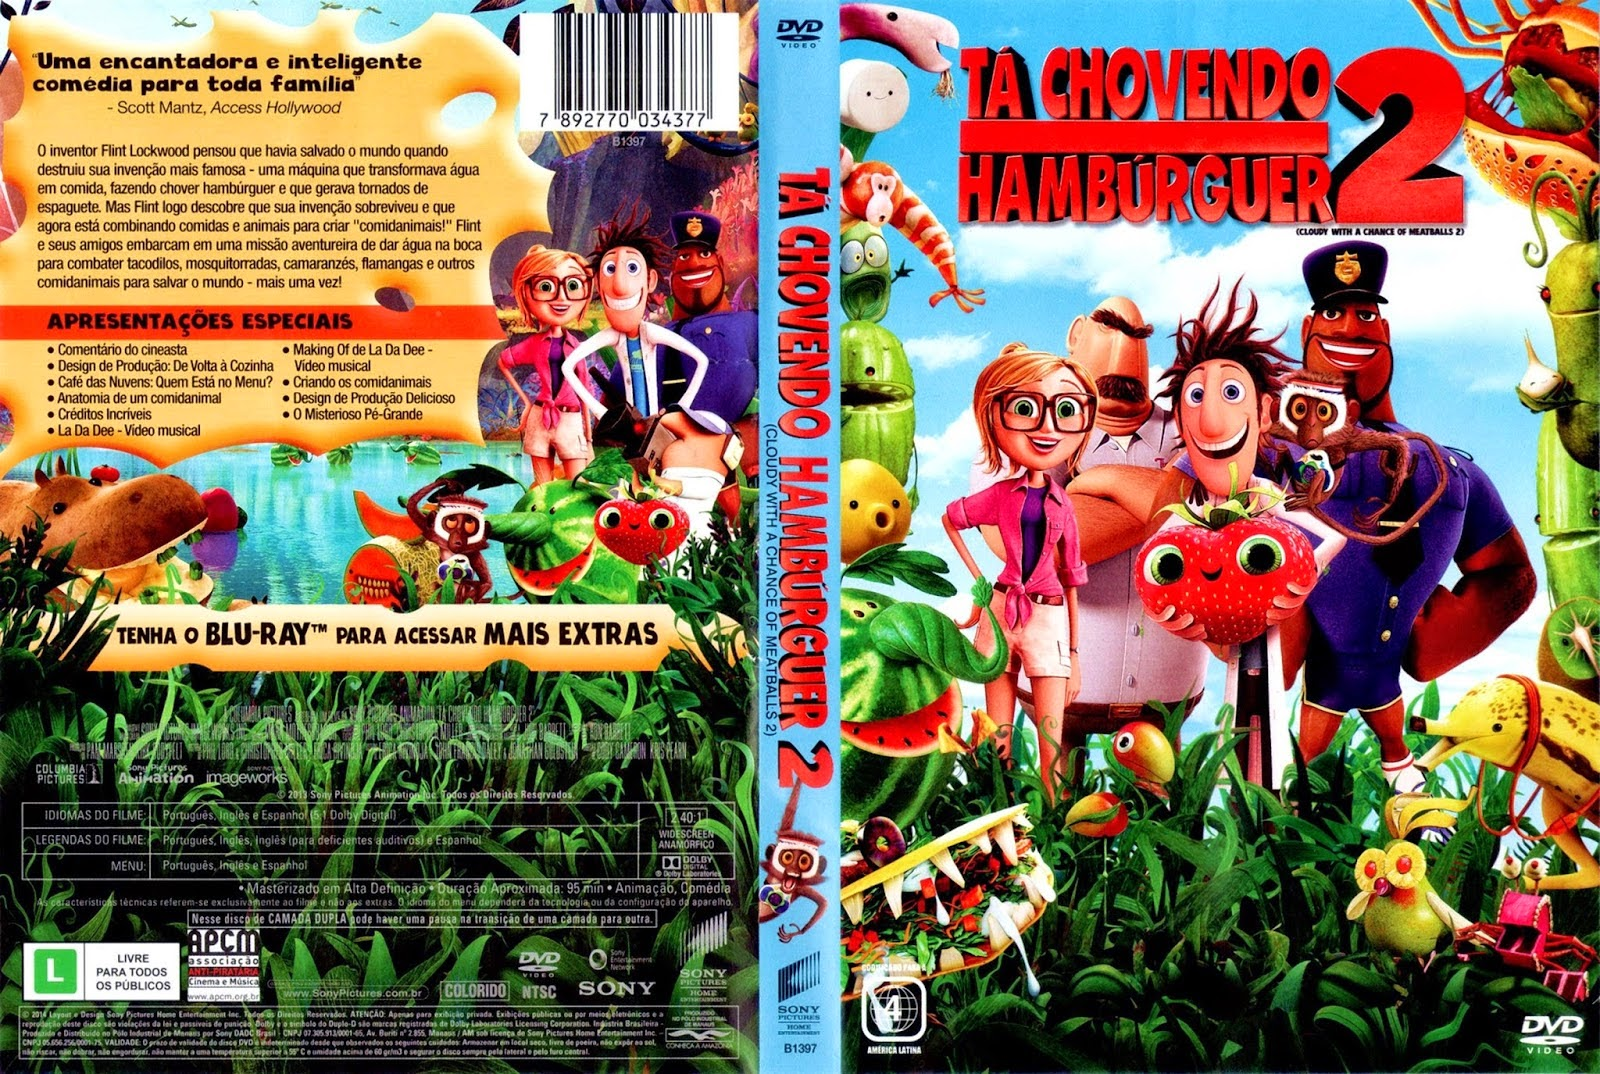 download do filme ta chovendo hamburguer 2 dublado torrent